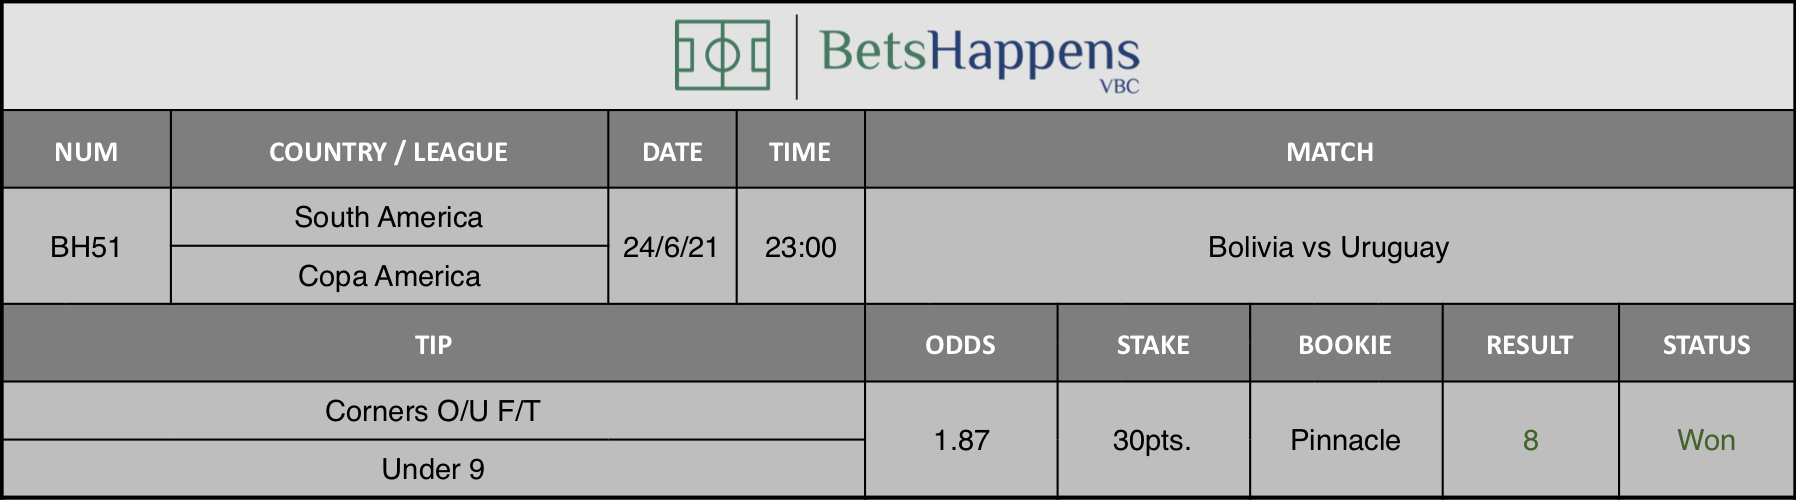 Results of our tip for the Bolivia vs Uruguay match Corners O/U F/T Under 9 is recommended.